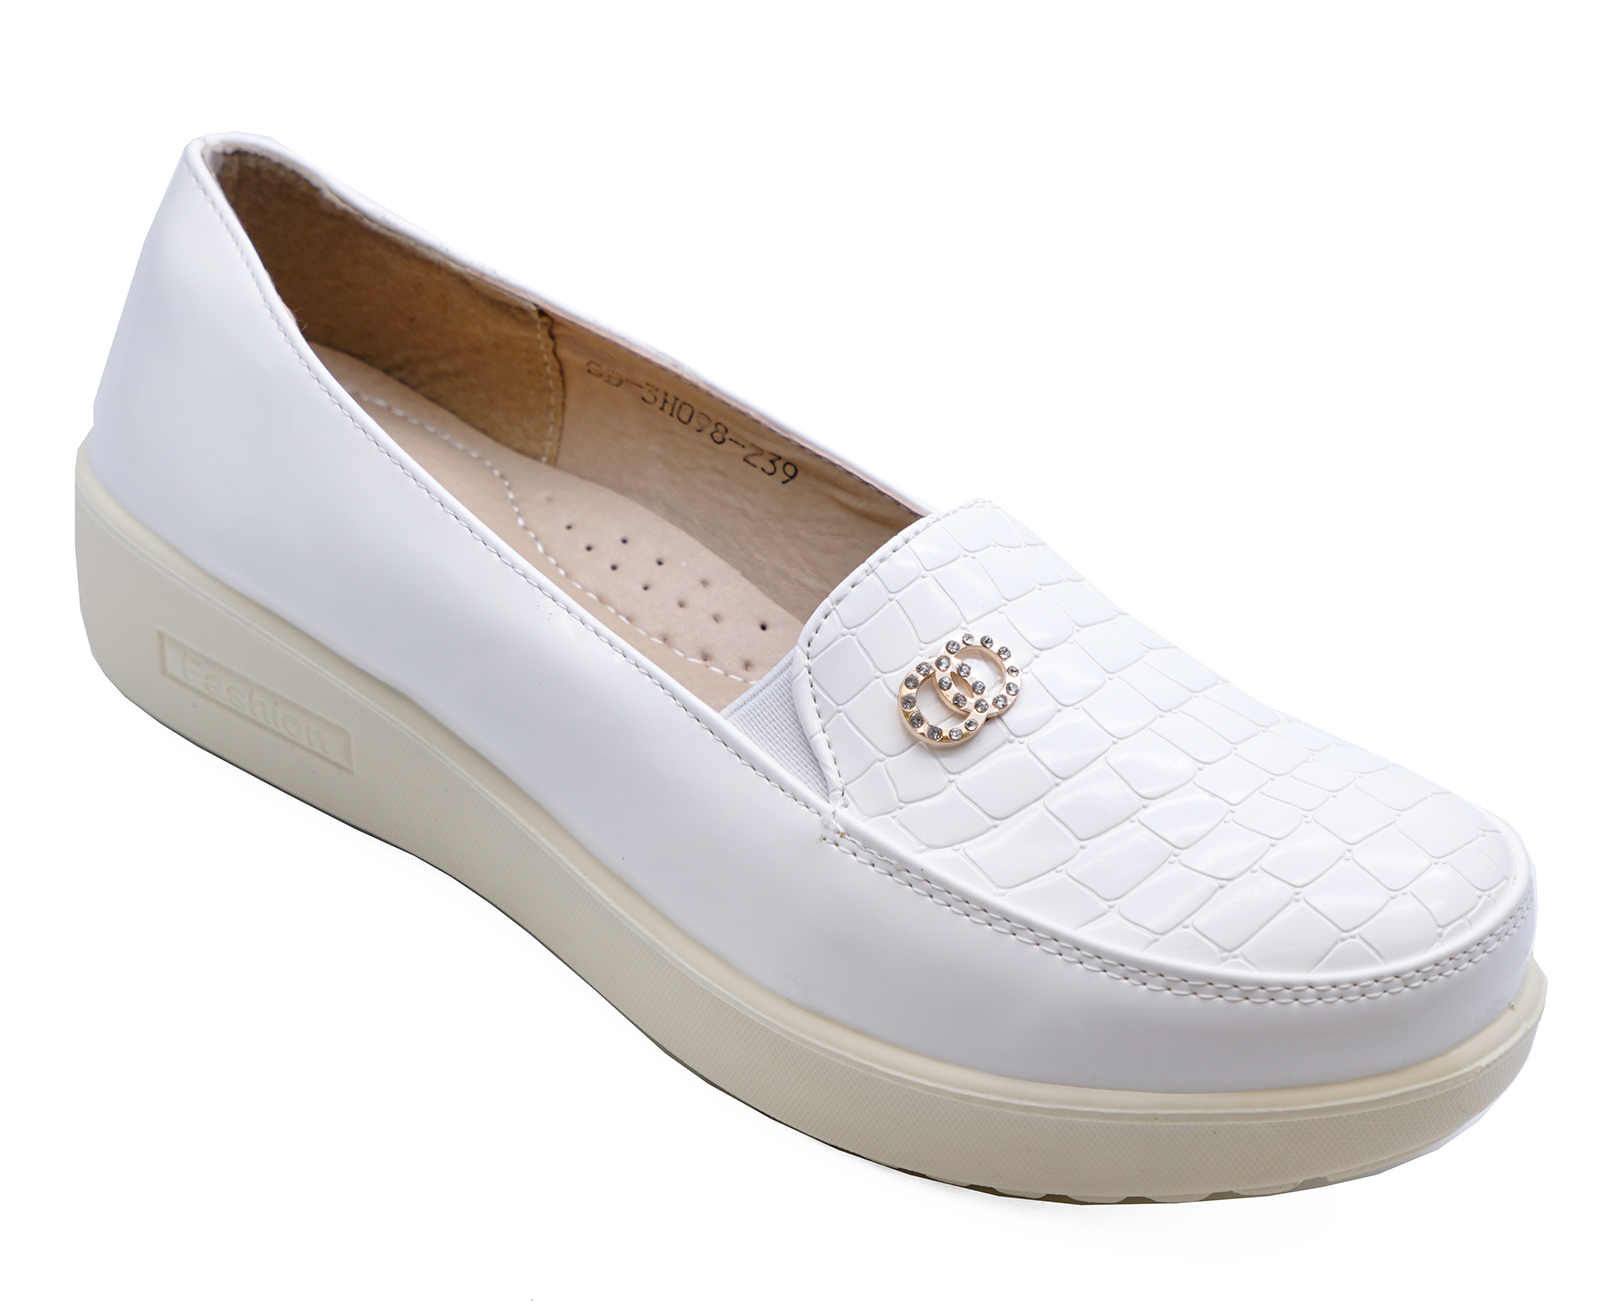 WOMENS WHITE SLIP-ON LOAFERS MOCCASIN CASUAL SMART COMFY SHOES PUMPS 2-8